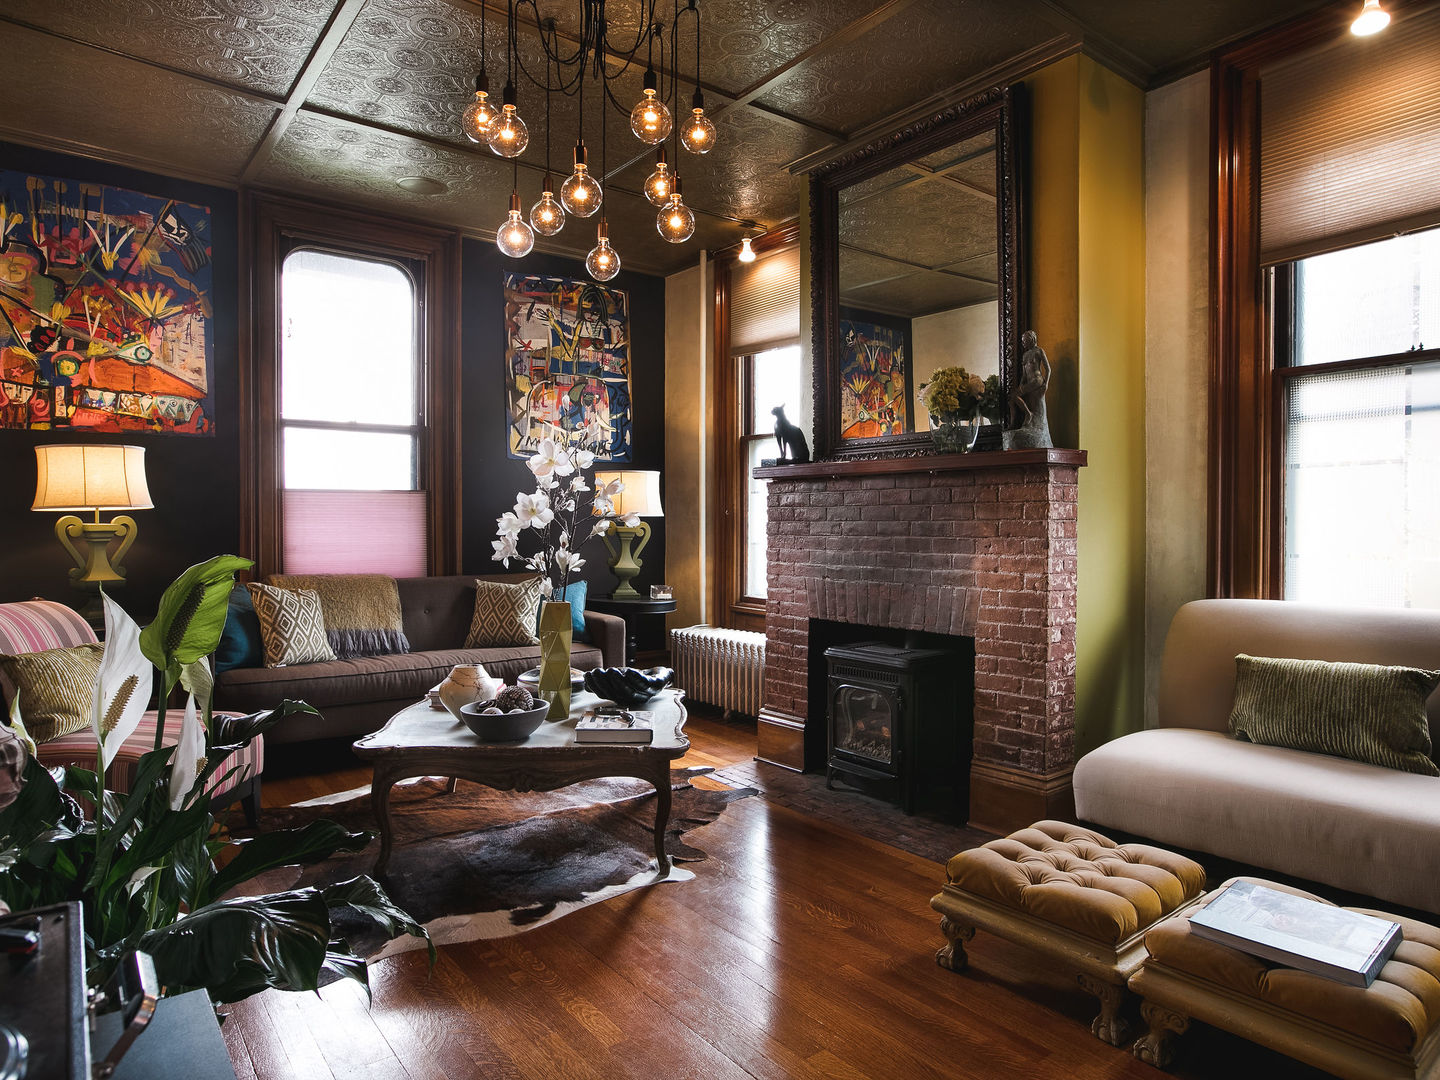 A living room filled with furniture and a large window at Made INN Vermont Bed and Breakfast.